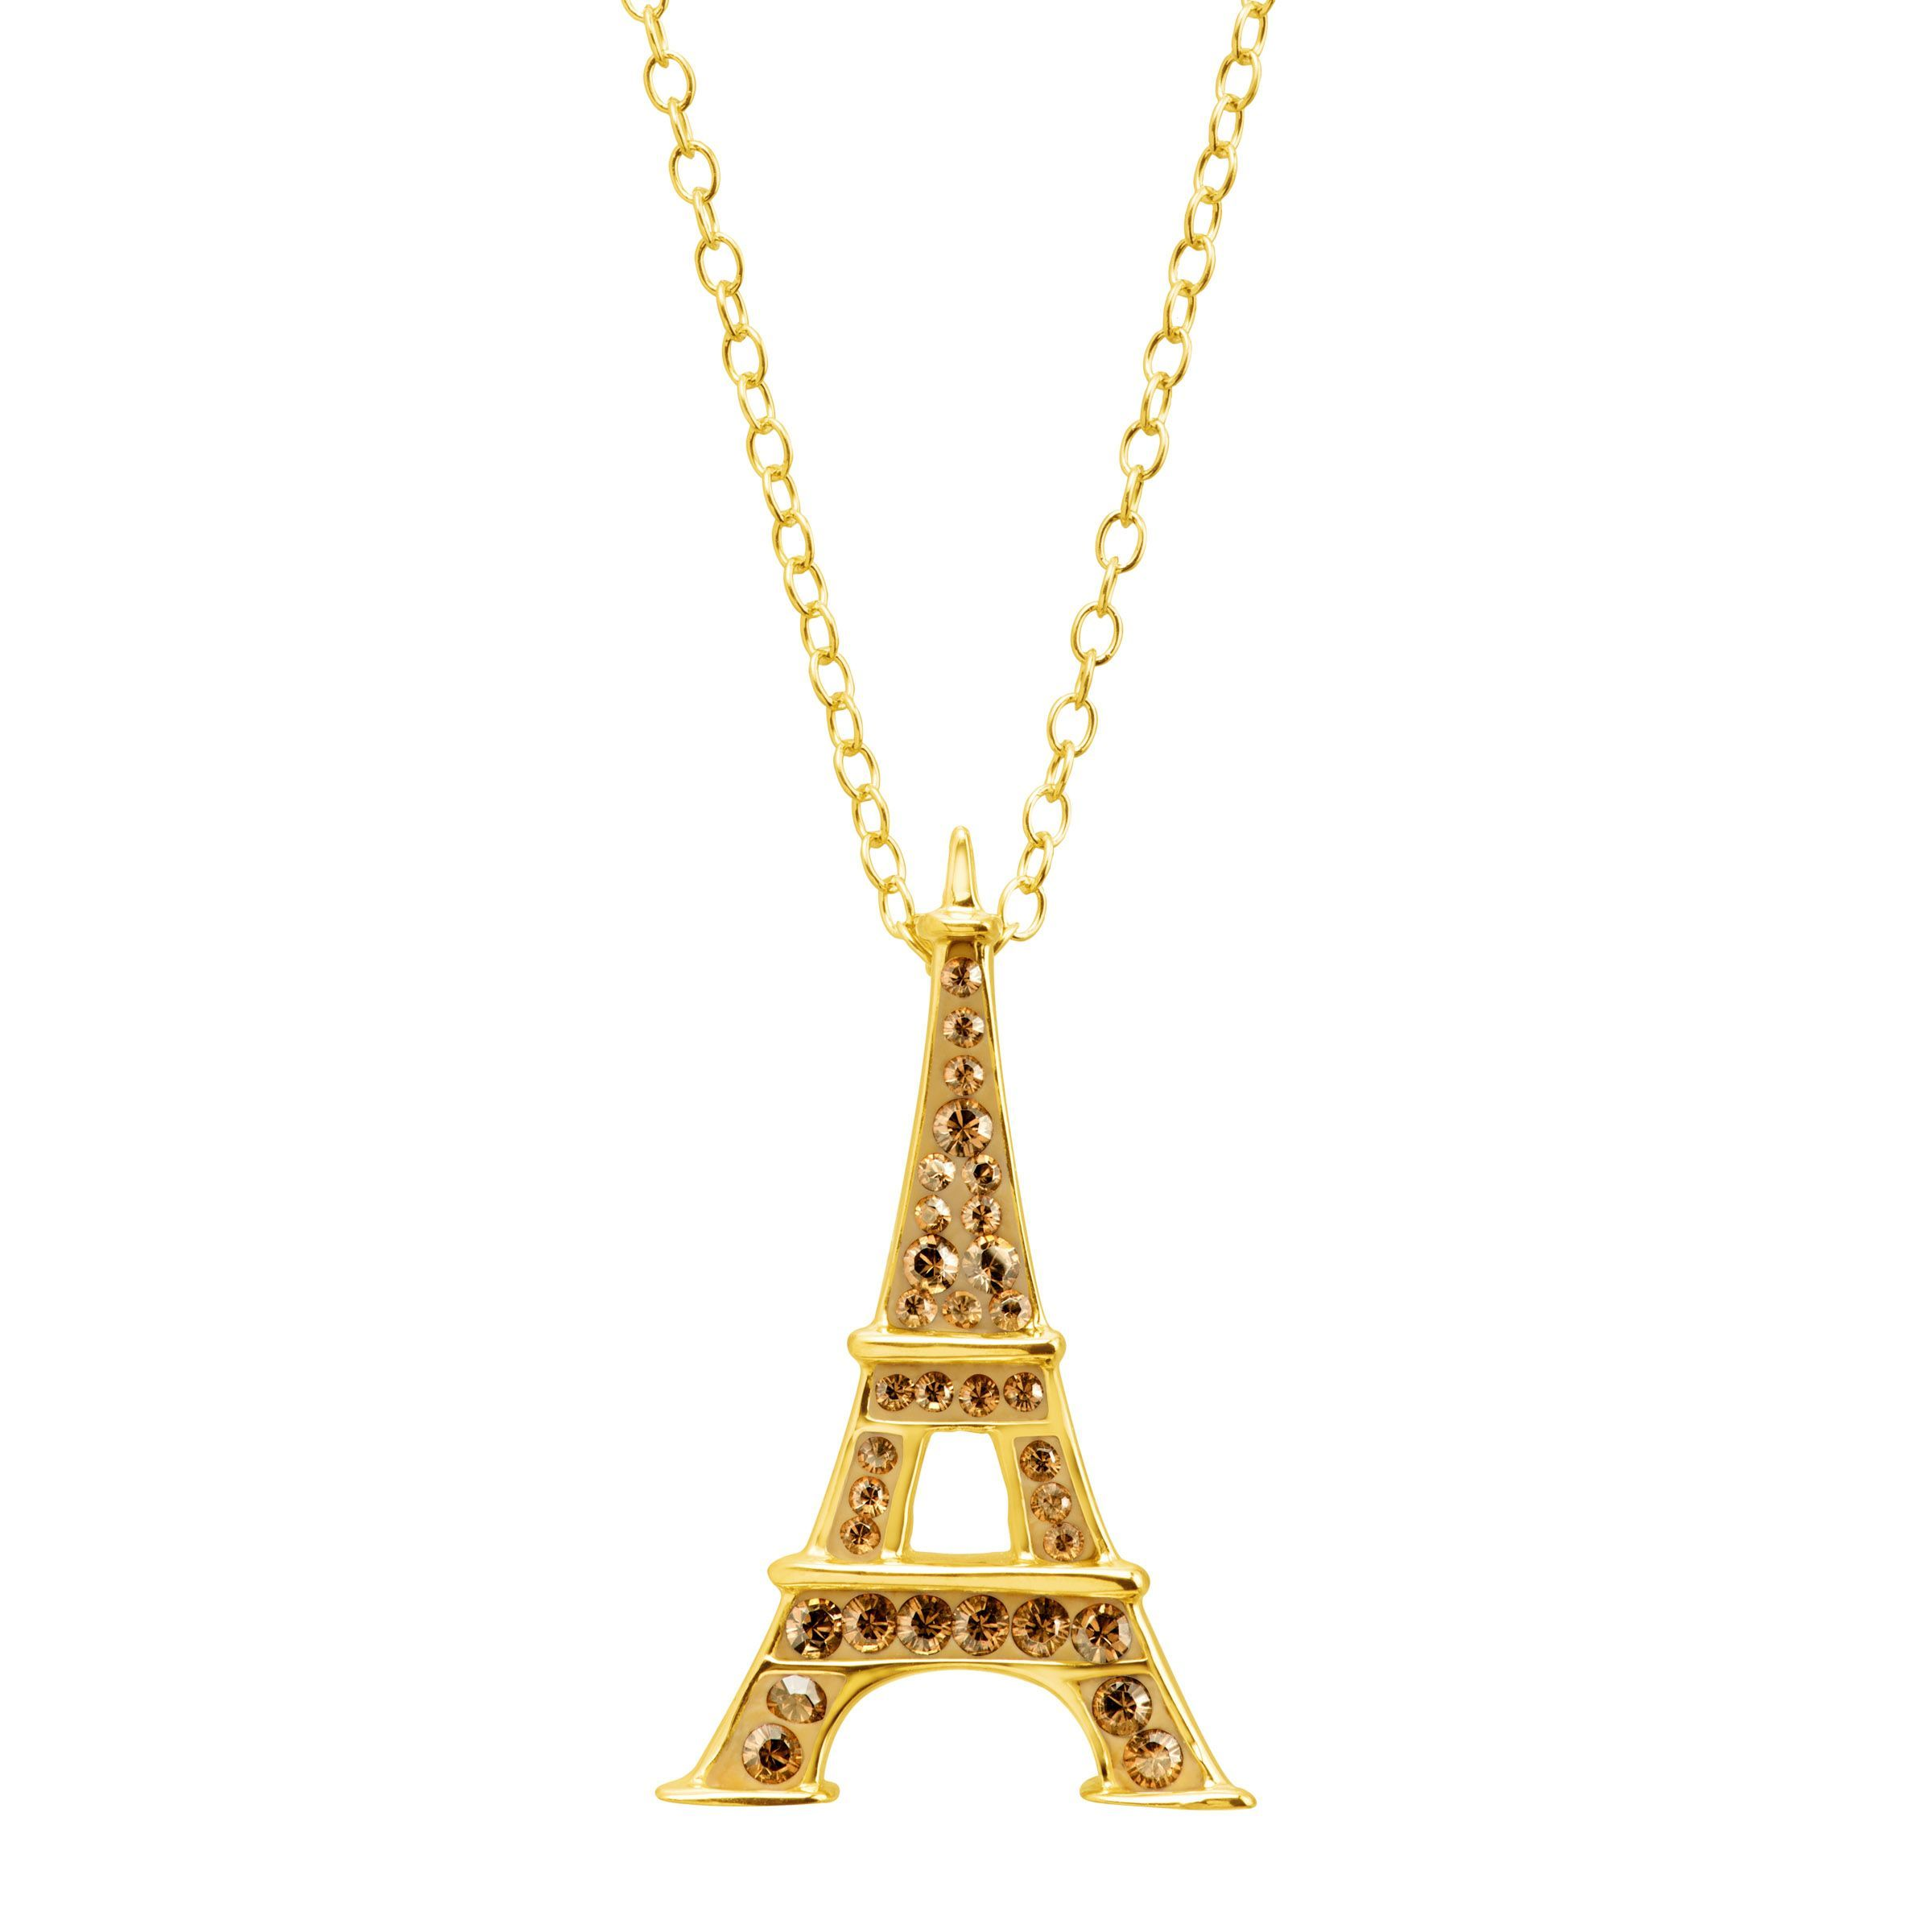 fbf033db1 Crystaluxe Eiffel Tower Pendant With Swarovski Crystals 18k Gold. 14k Or ...